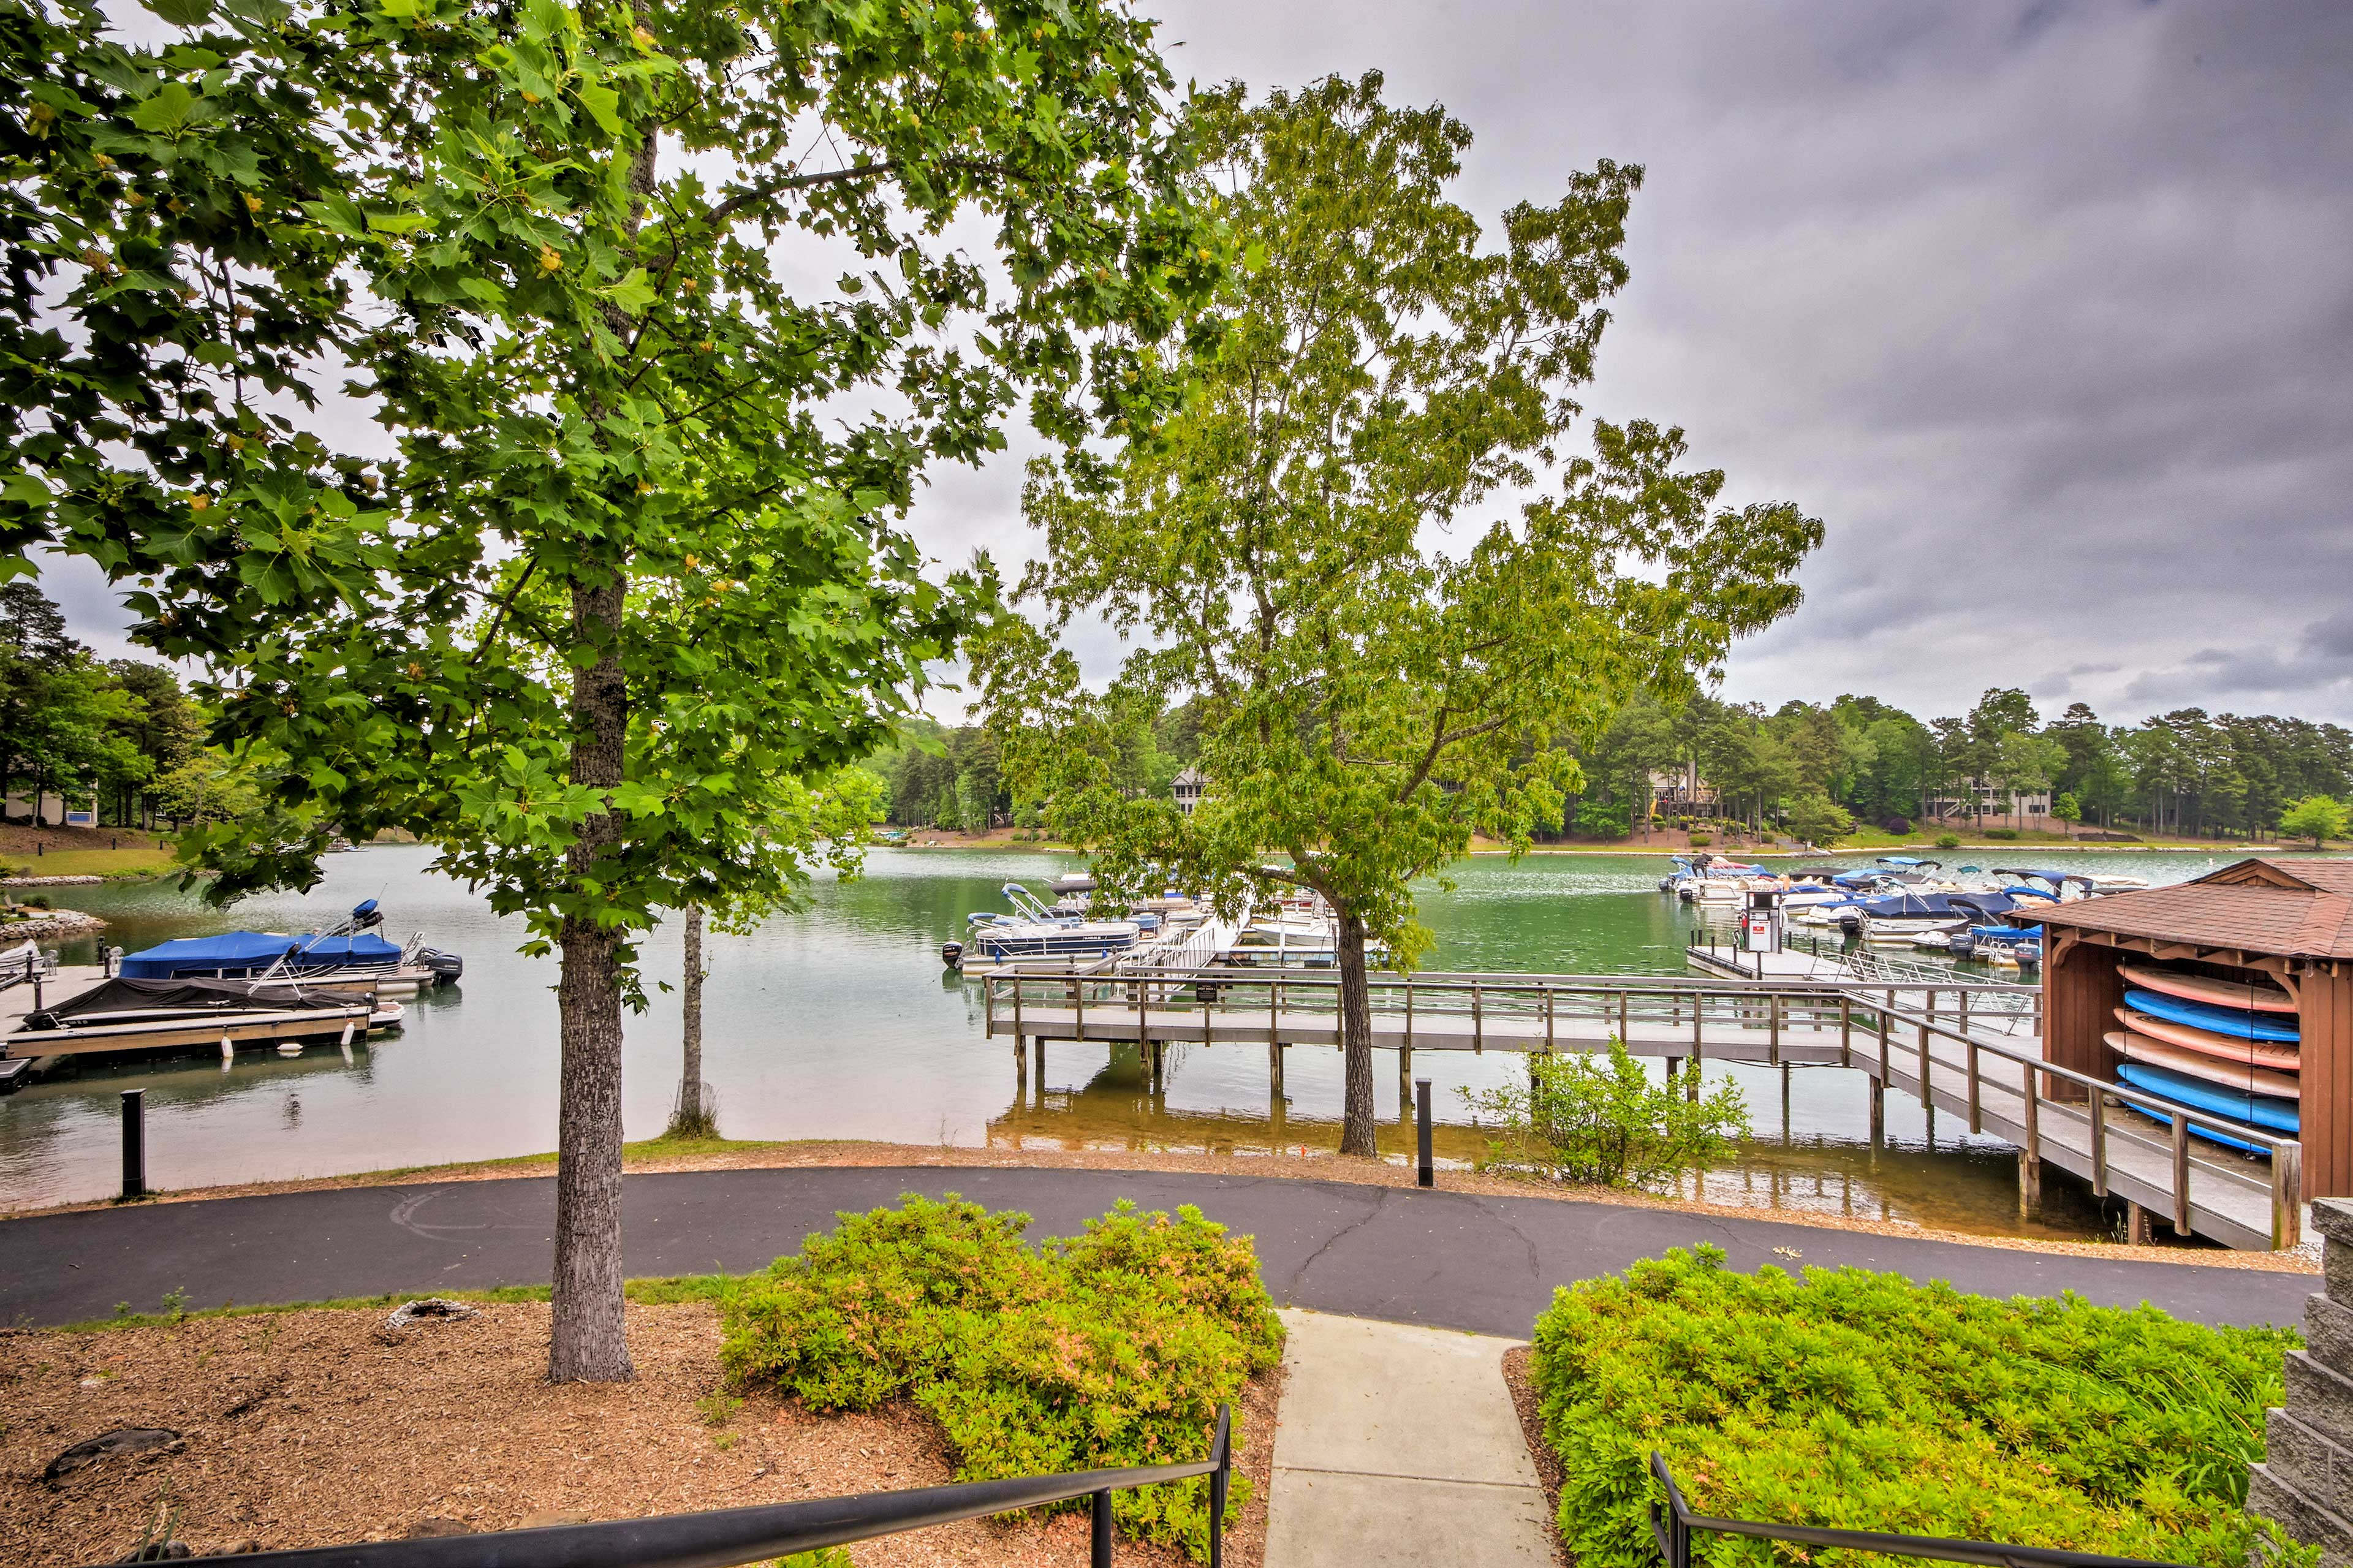 The marina offers paddle board and boat slip rentals.